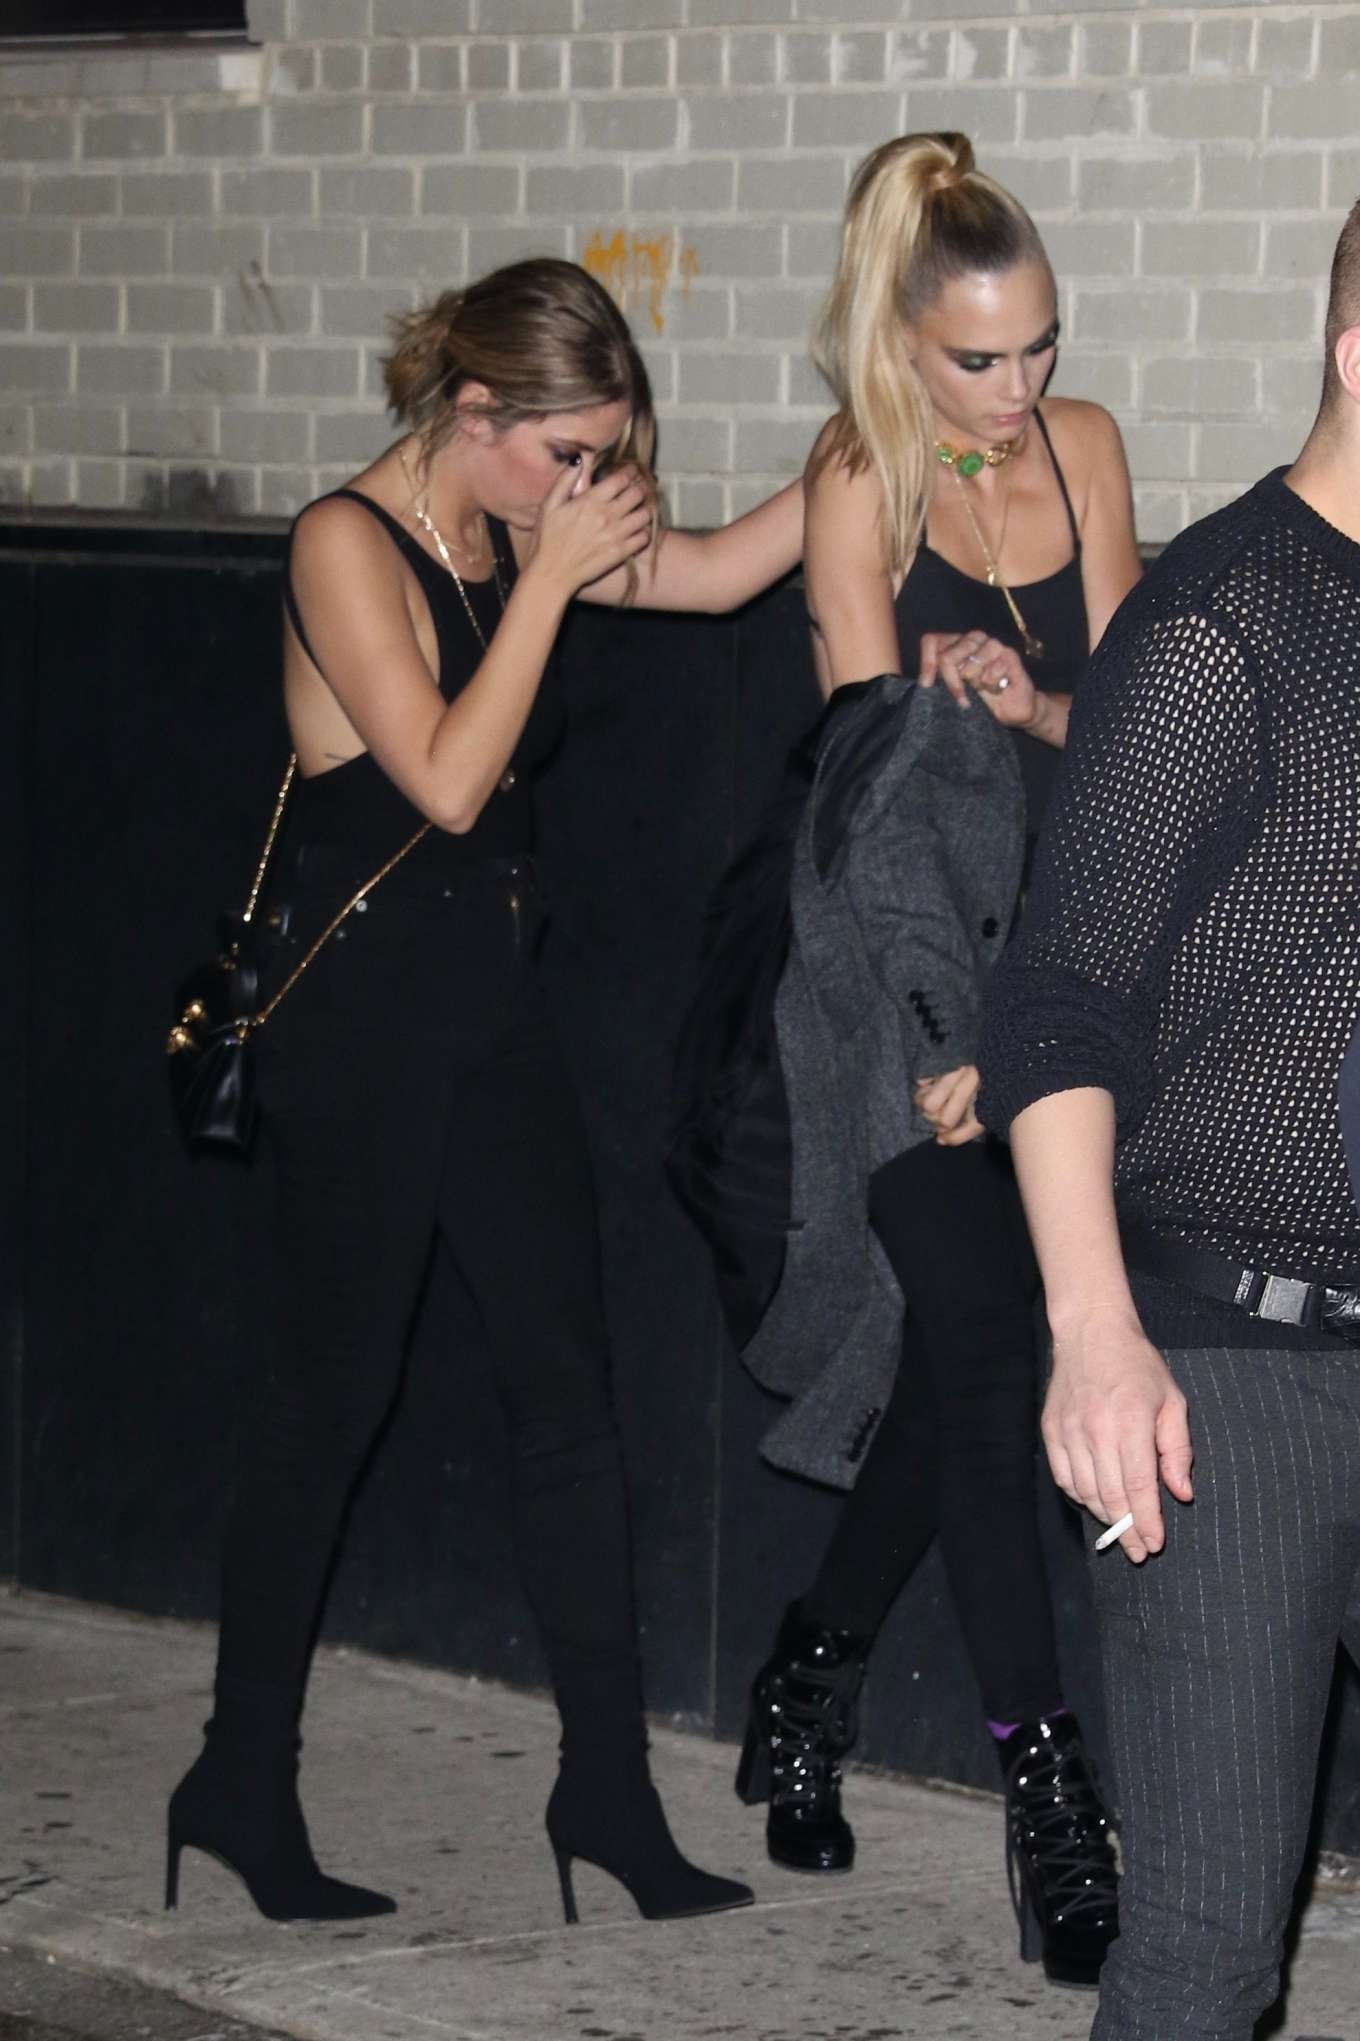 Cara Delevingne and Ashley Benson - Arriving to Rihanna's Fenty Afterparty in NY